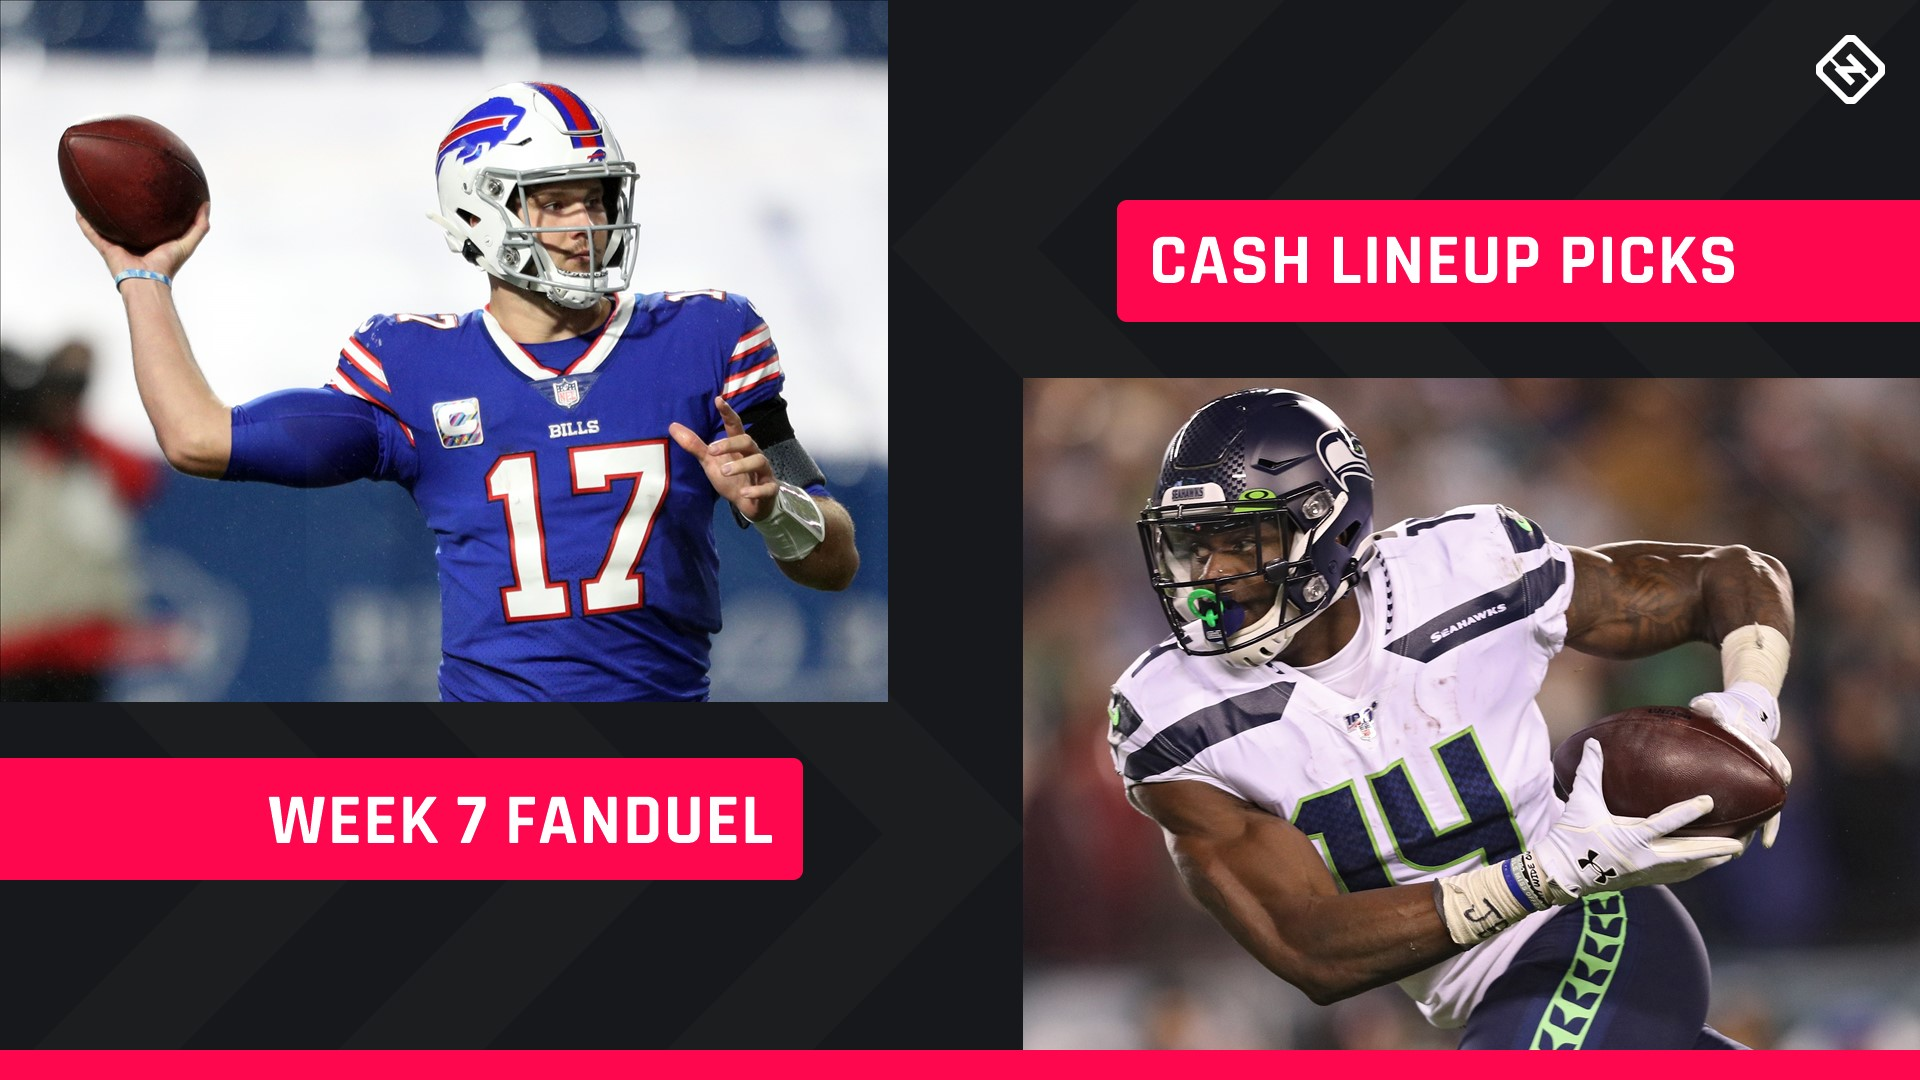 Fanduel Picks Week 7 Nfl Dfs Lineup Advice For Daily Fantasy Football Cash Games Sporting News